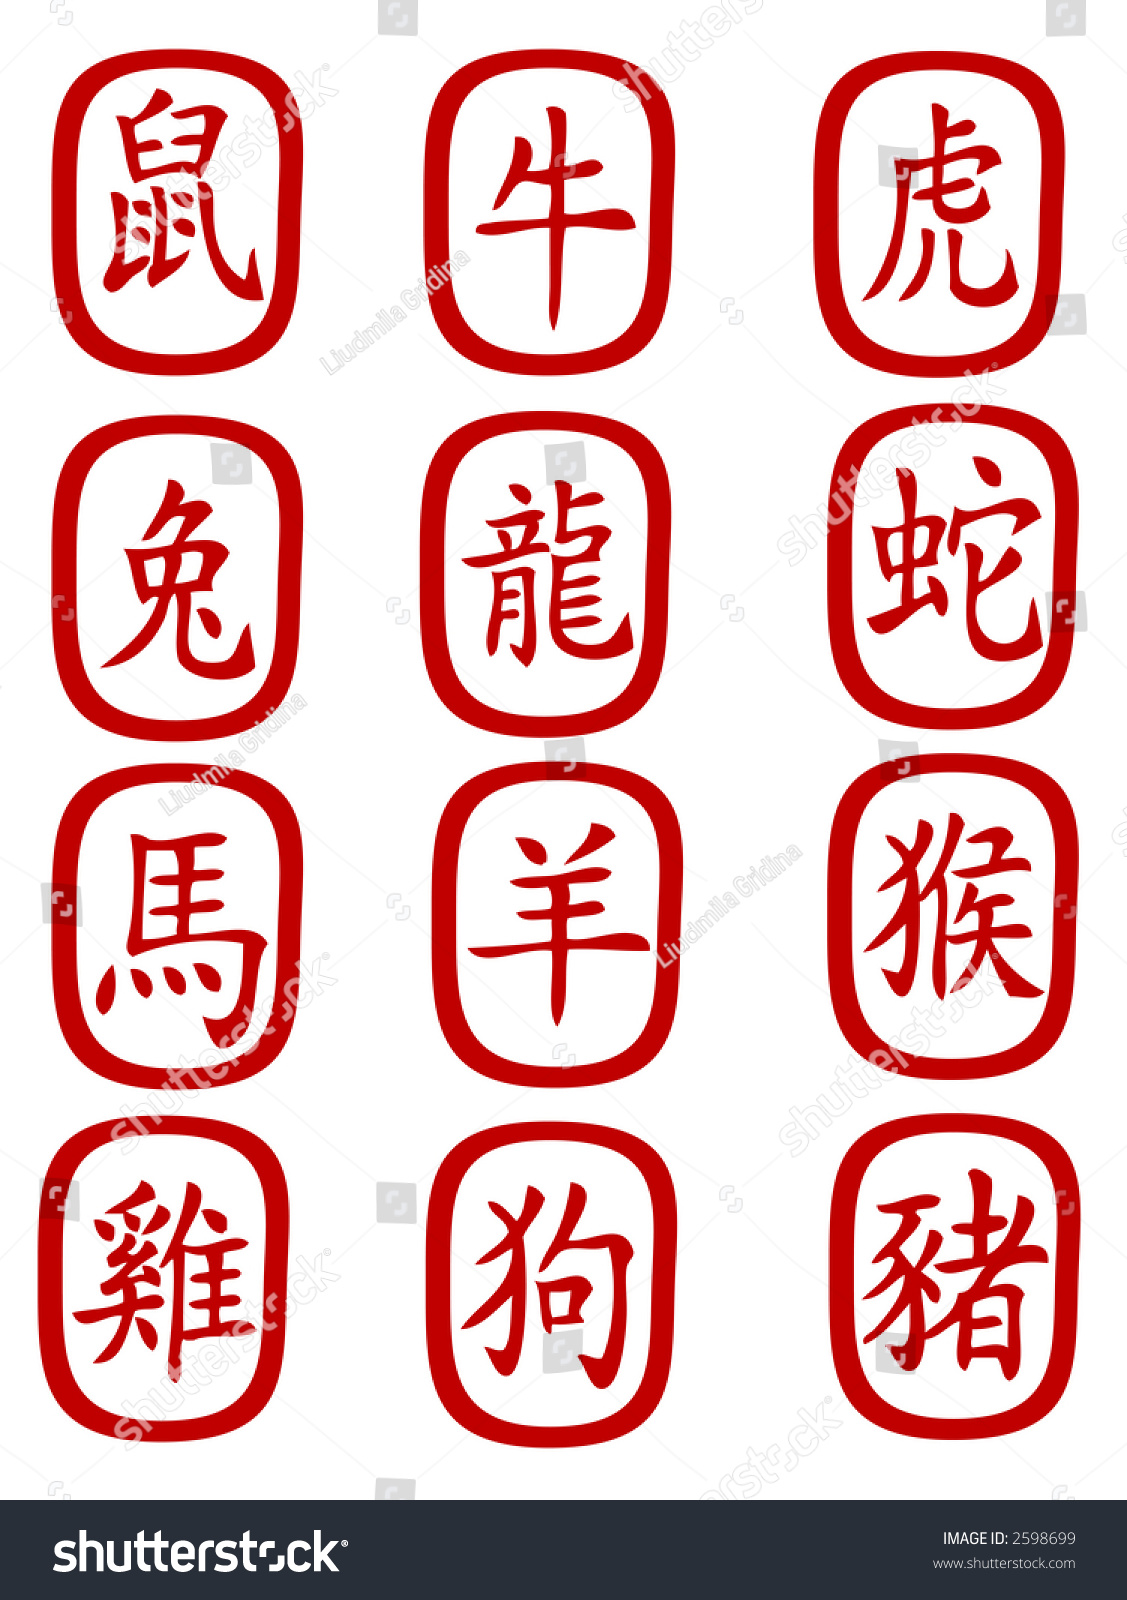 Chinese Zodiac Symbols 1st Row Rat Stock Illustration 2598699